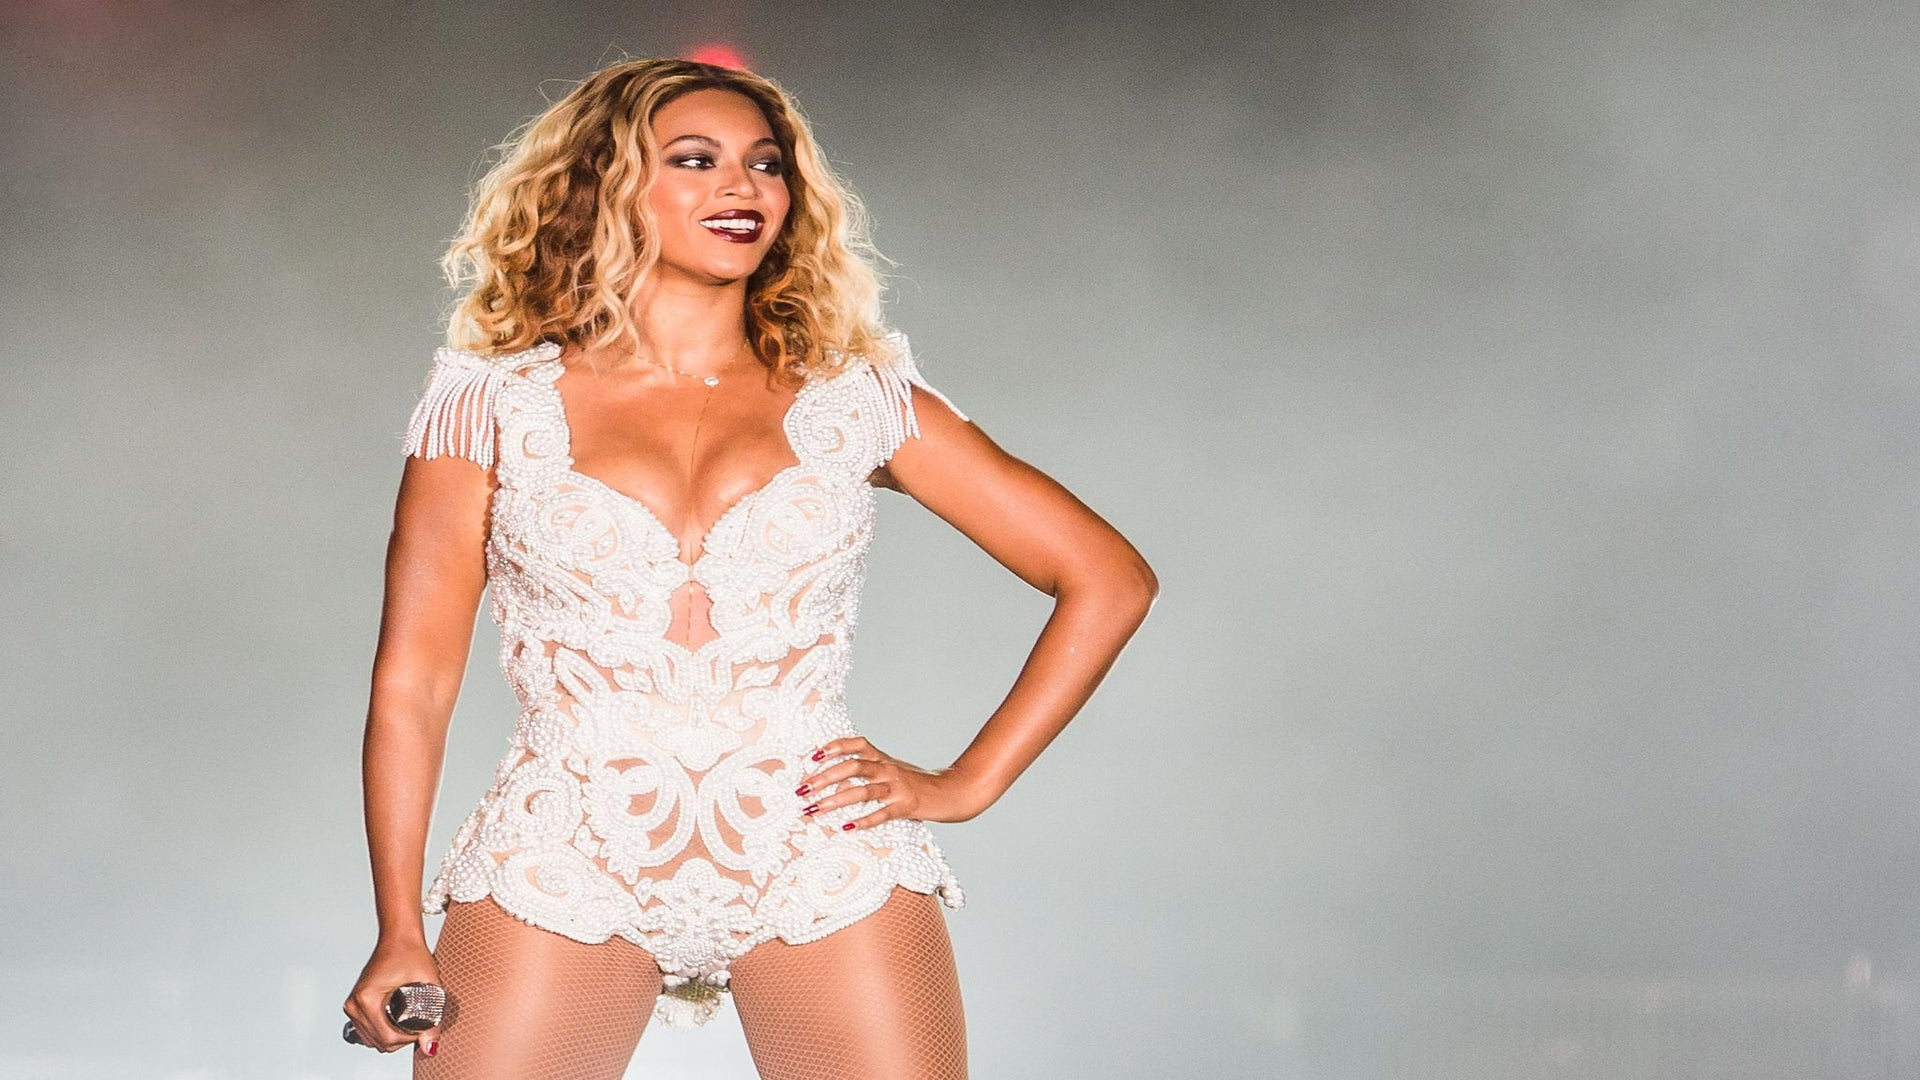 Beyoncé's Foundation Offers Aid to the People of Flint